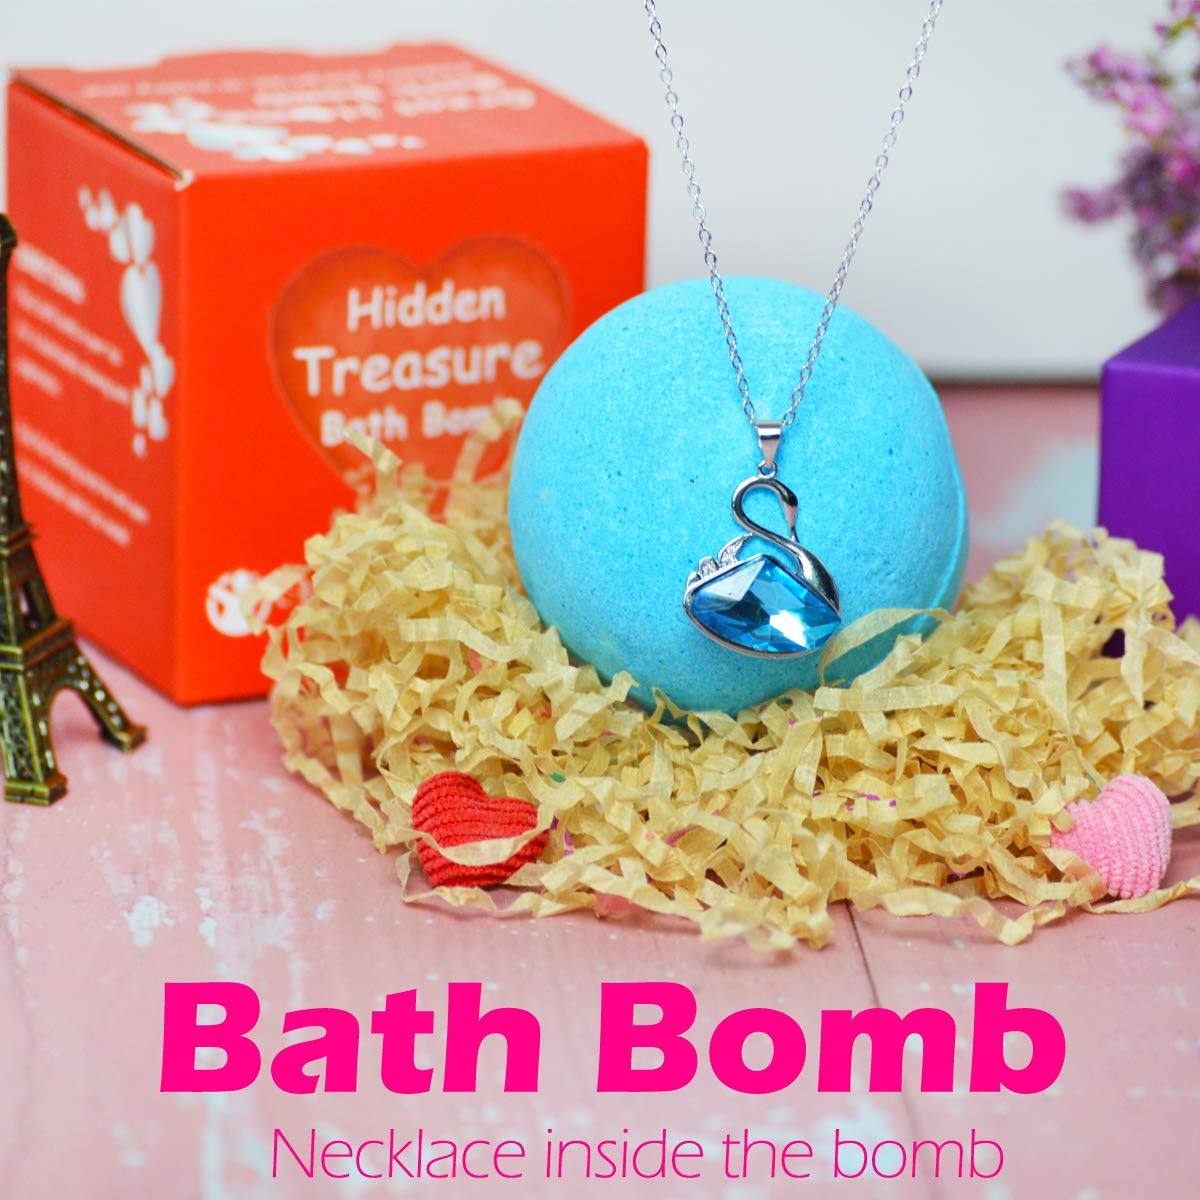 Bath Bombs For Kids Surprise Toy Inside 6 Fun Colorful Fizzy Bath Bombs Great Home Kids Bath Bombs Set Gender Neutral Boys & Girls Best Birthday Holiday Gifting Idea for Kids(Ship From US) GB01